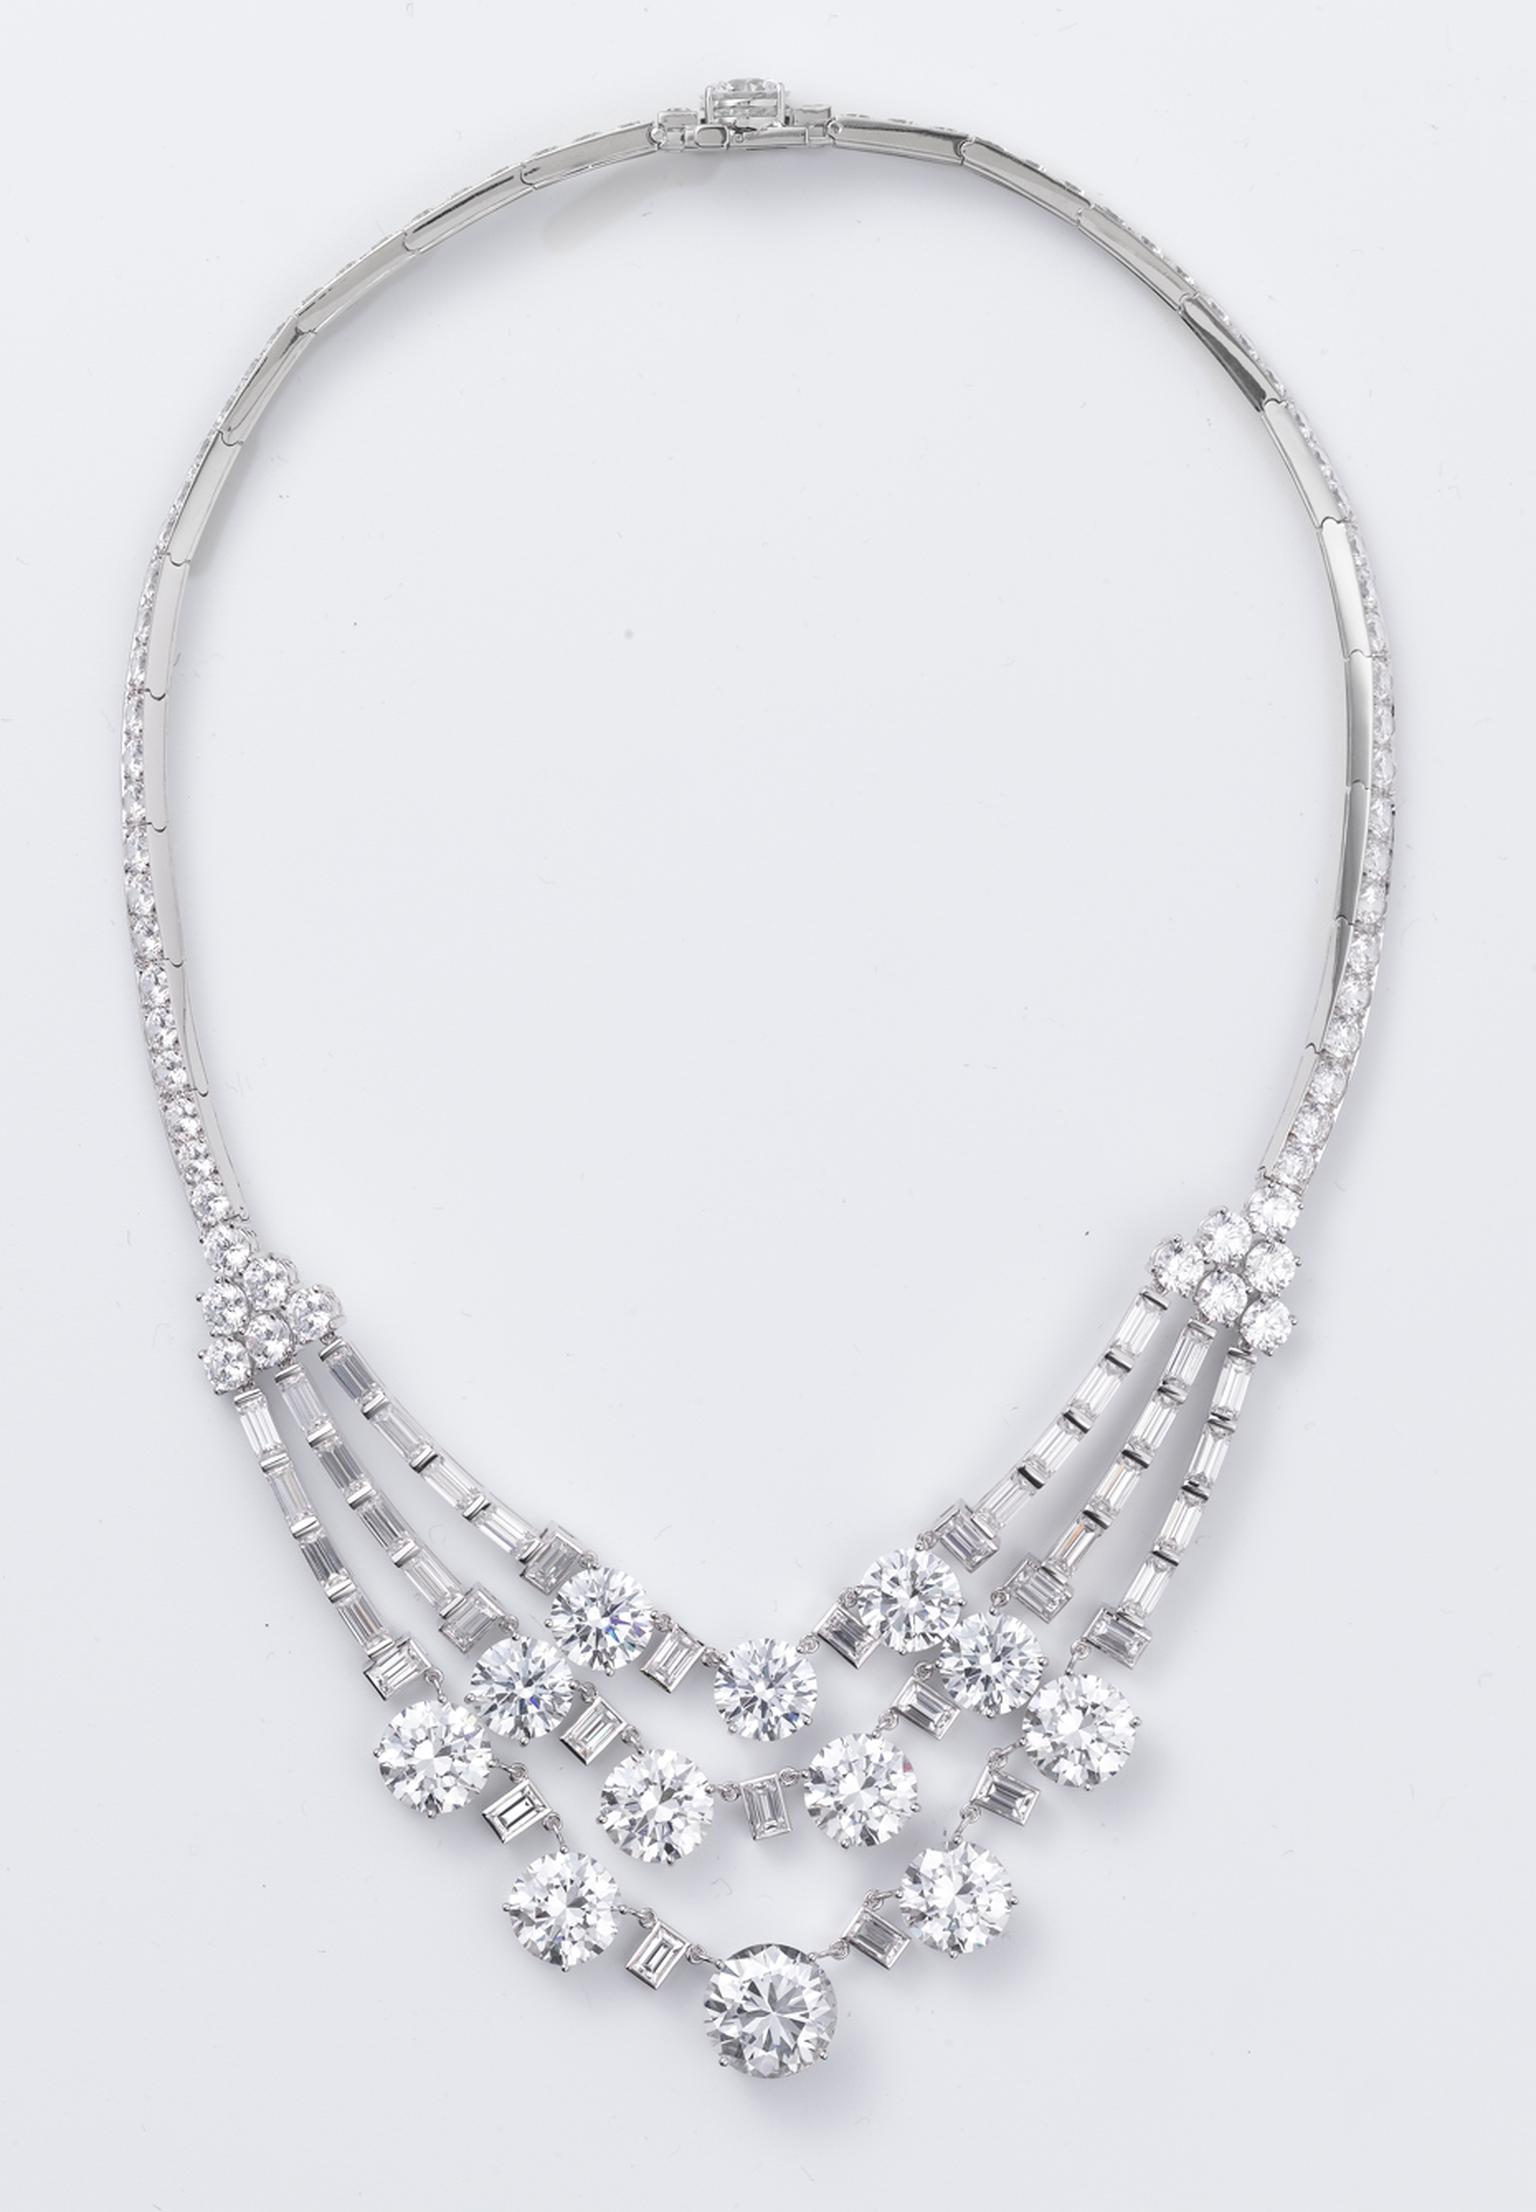 Cartier reproduction of the 1953 three-strand diamond necklace given to Grace Kelly and worn by Nicole Kidman in the film Grace of Monaco by Olivier Dahan. (Photo credits: Amélie Garreau © Cartier)